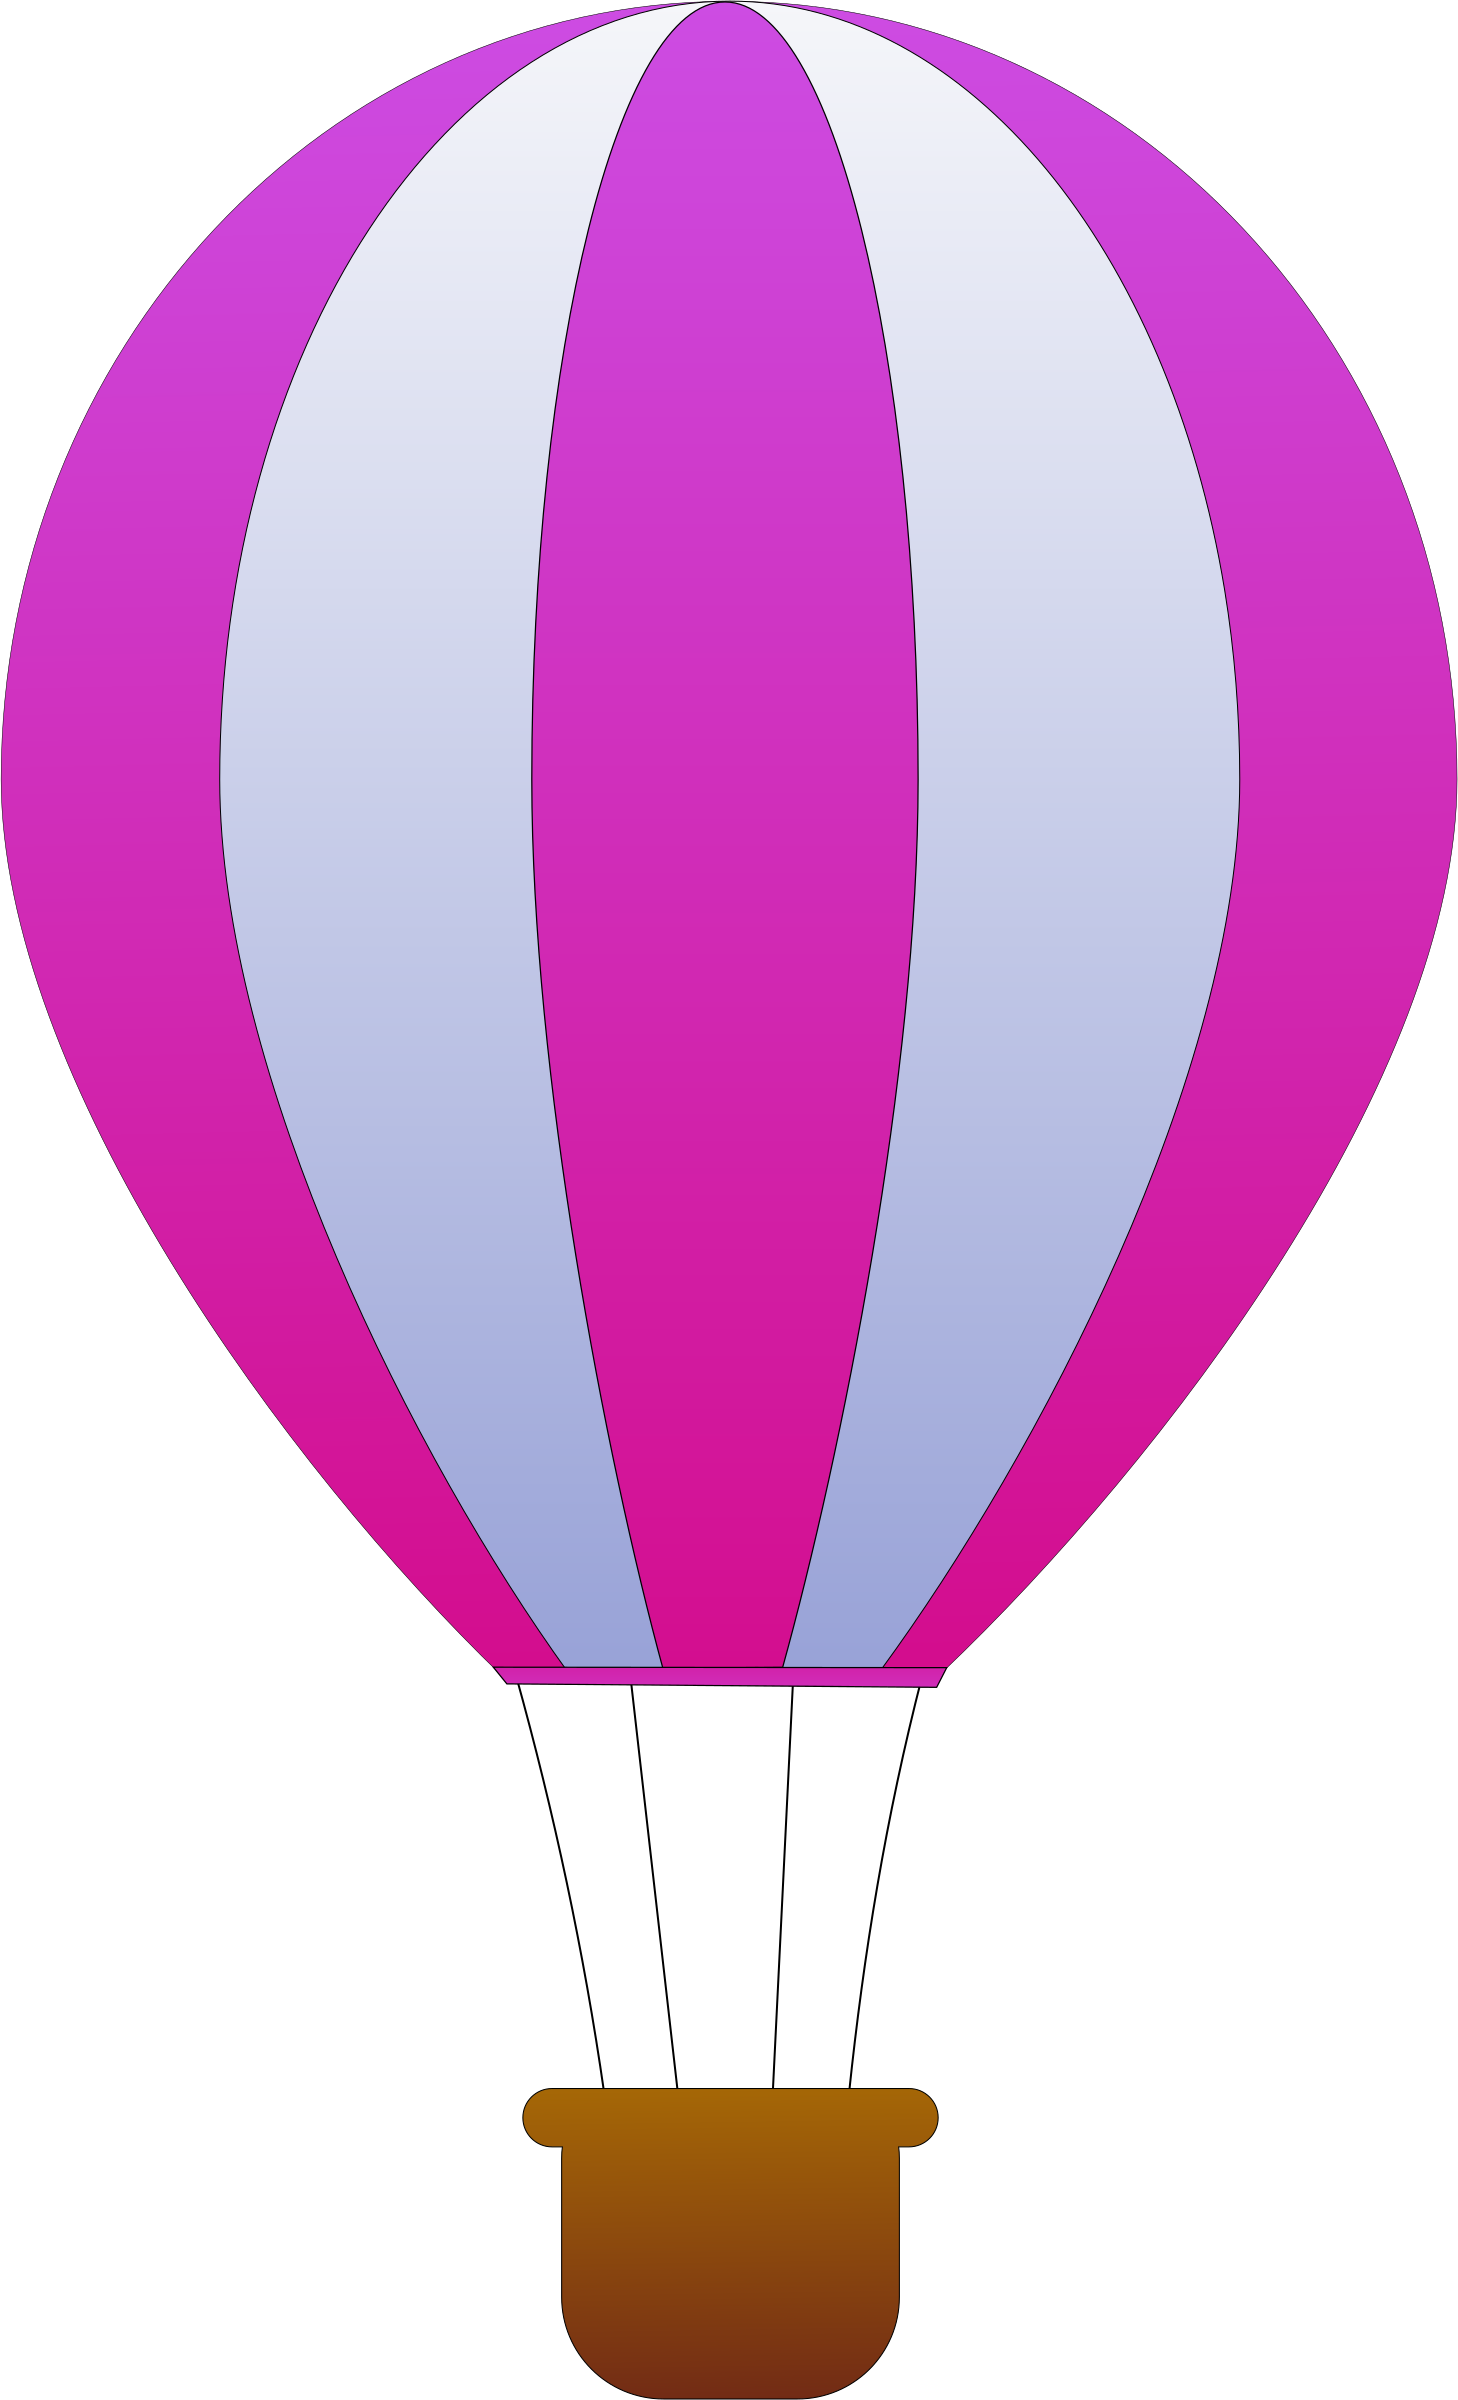 1458x2400 Hot Air Balloon Outline Transparent Png Clipart Free Download